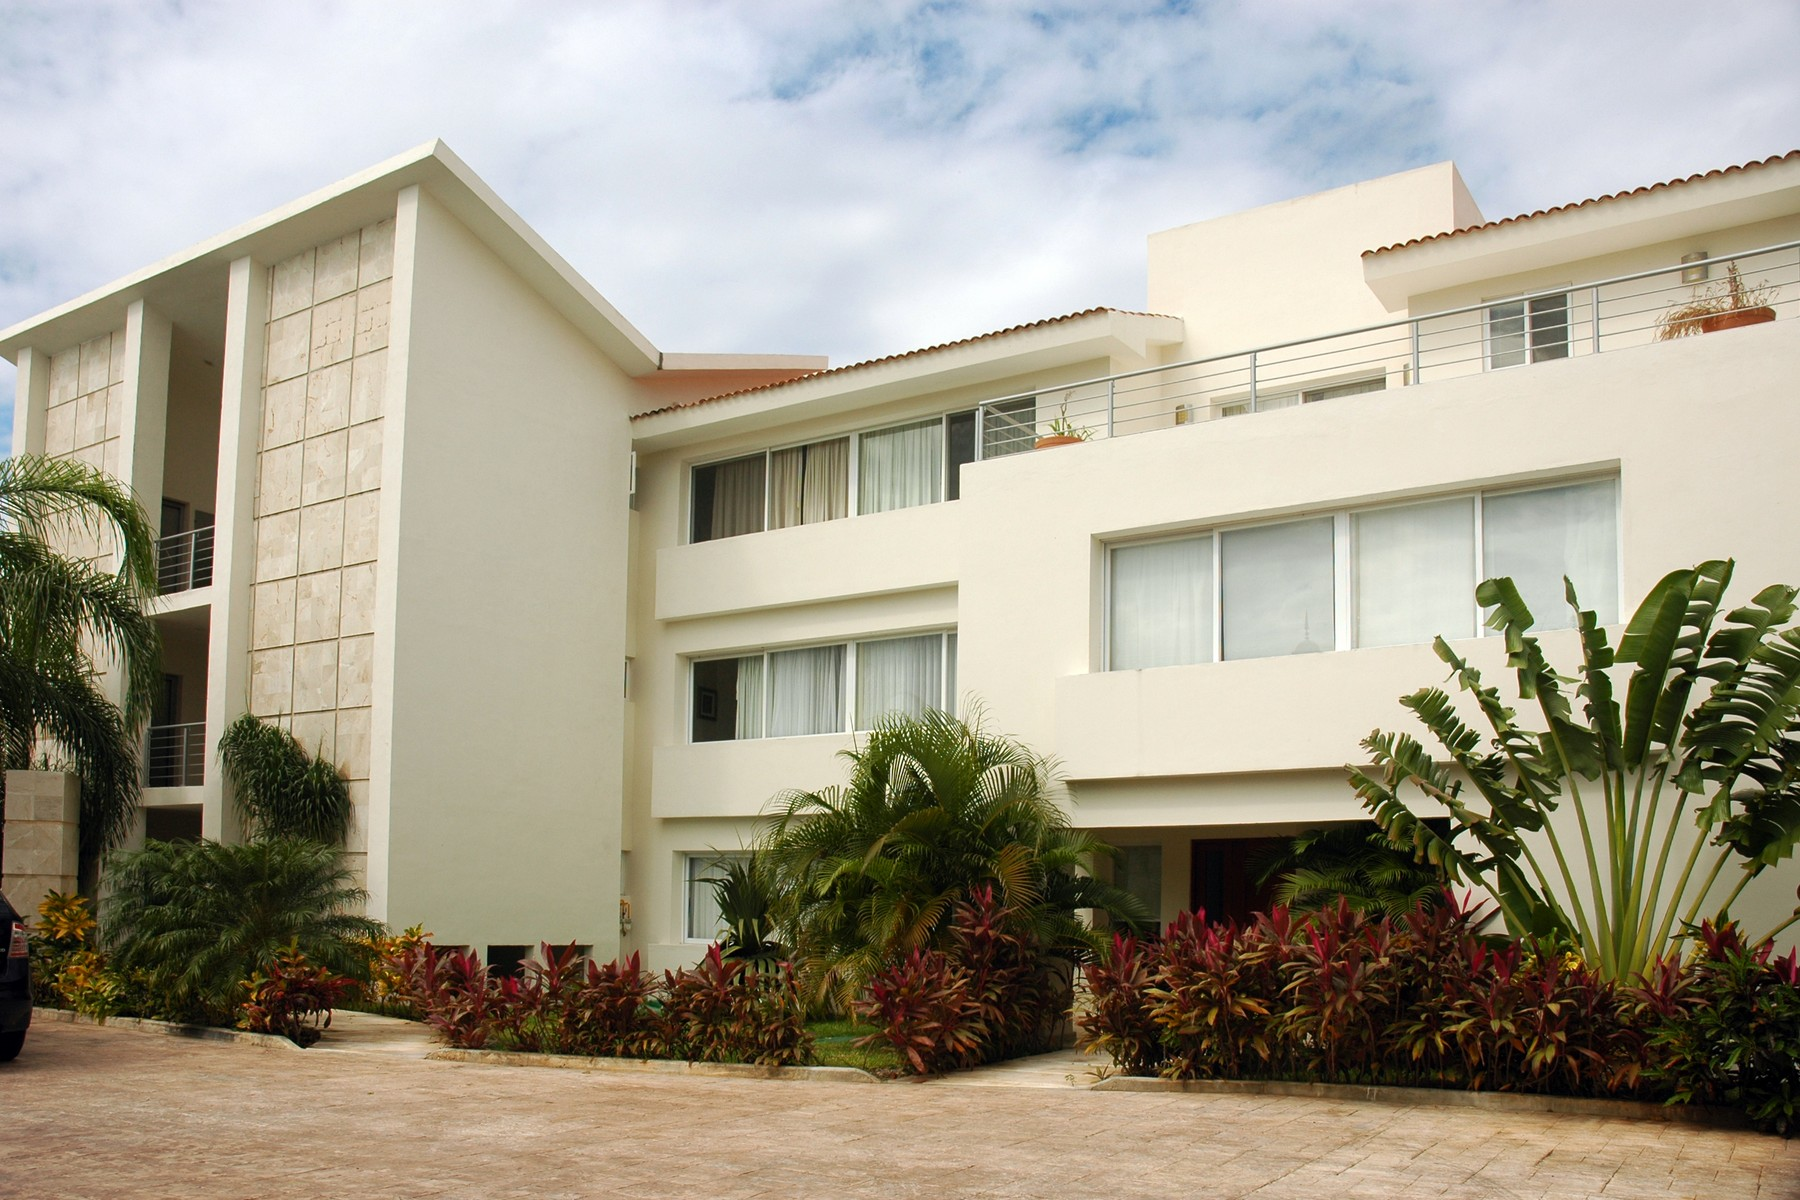 Condominium for Sale at GOLF ONE B2 Playa Del Carmen, Quintana Roo, 77710 Mexico